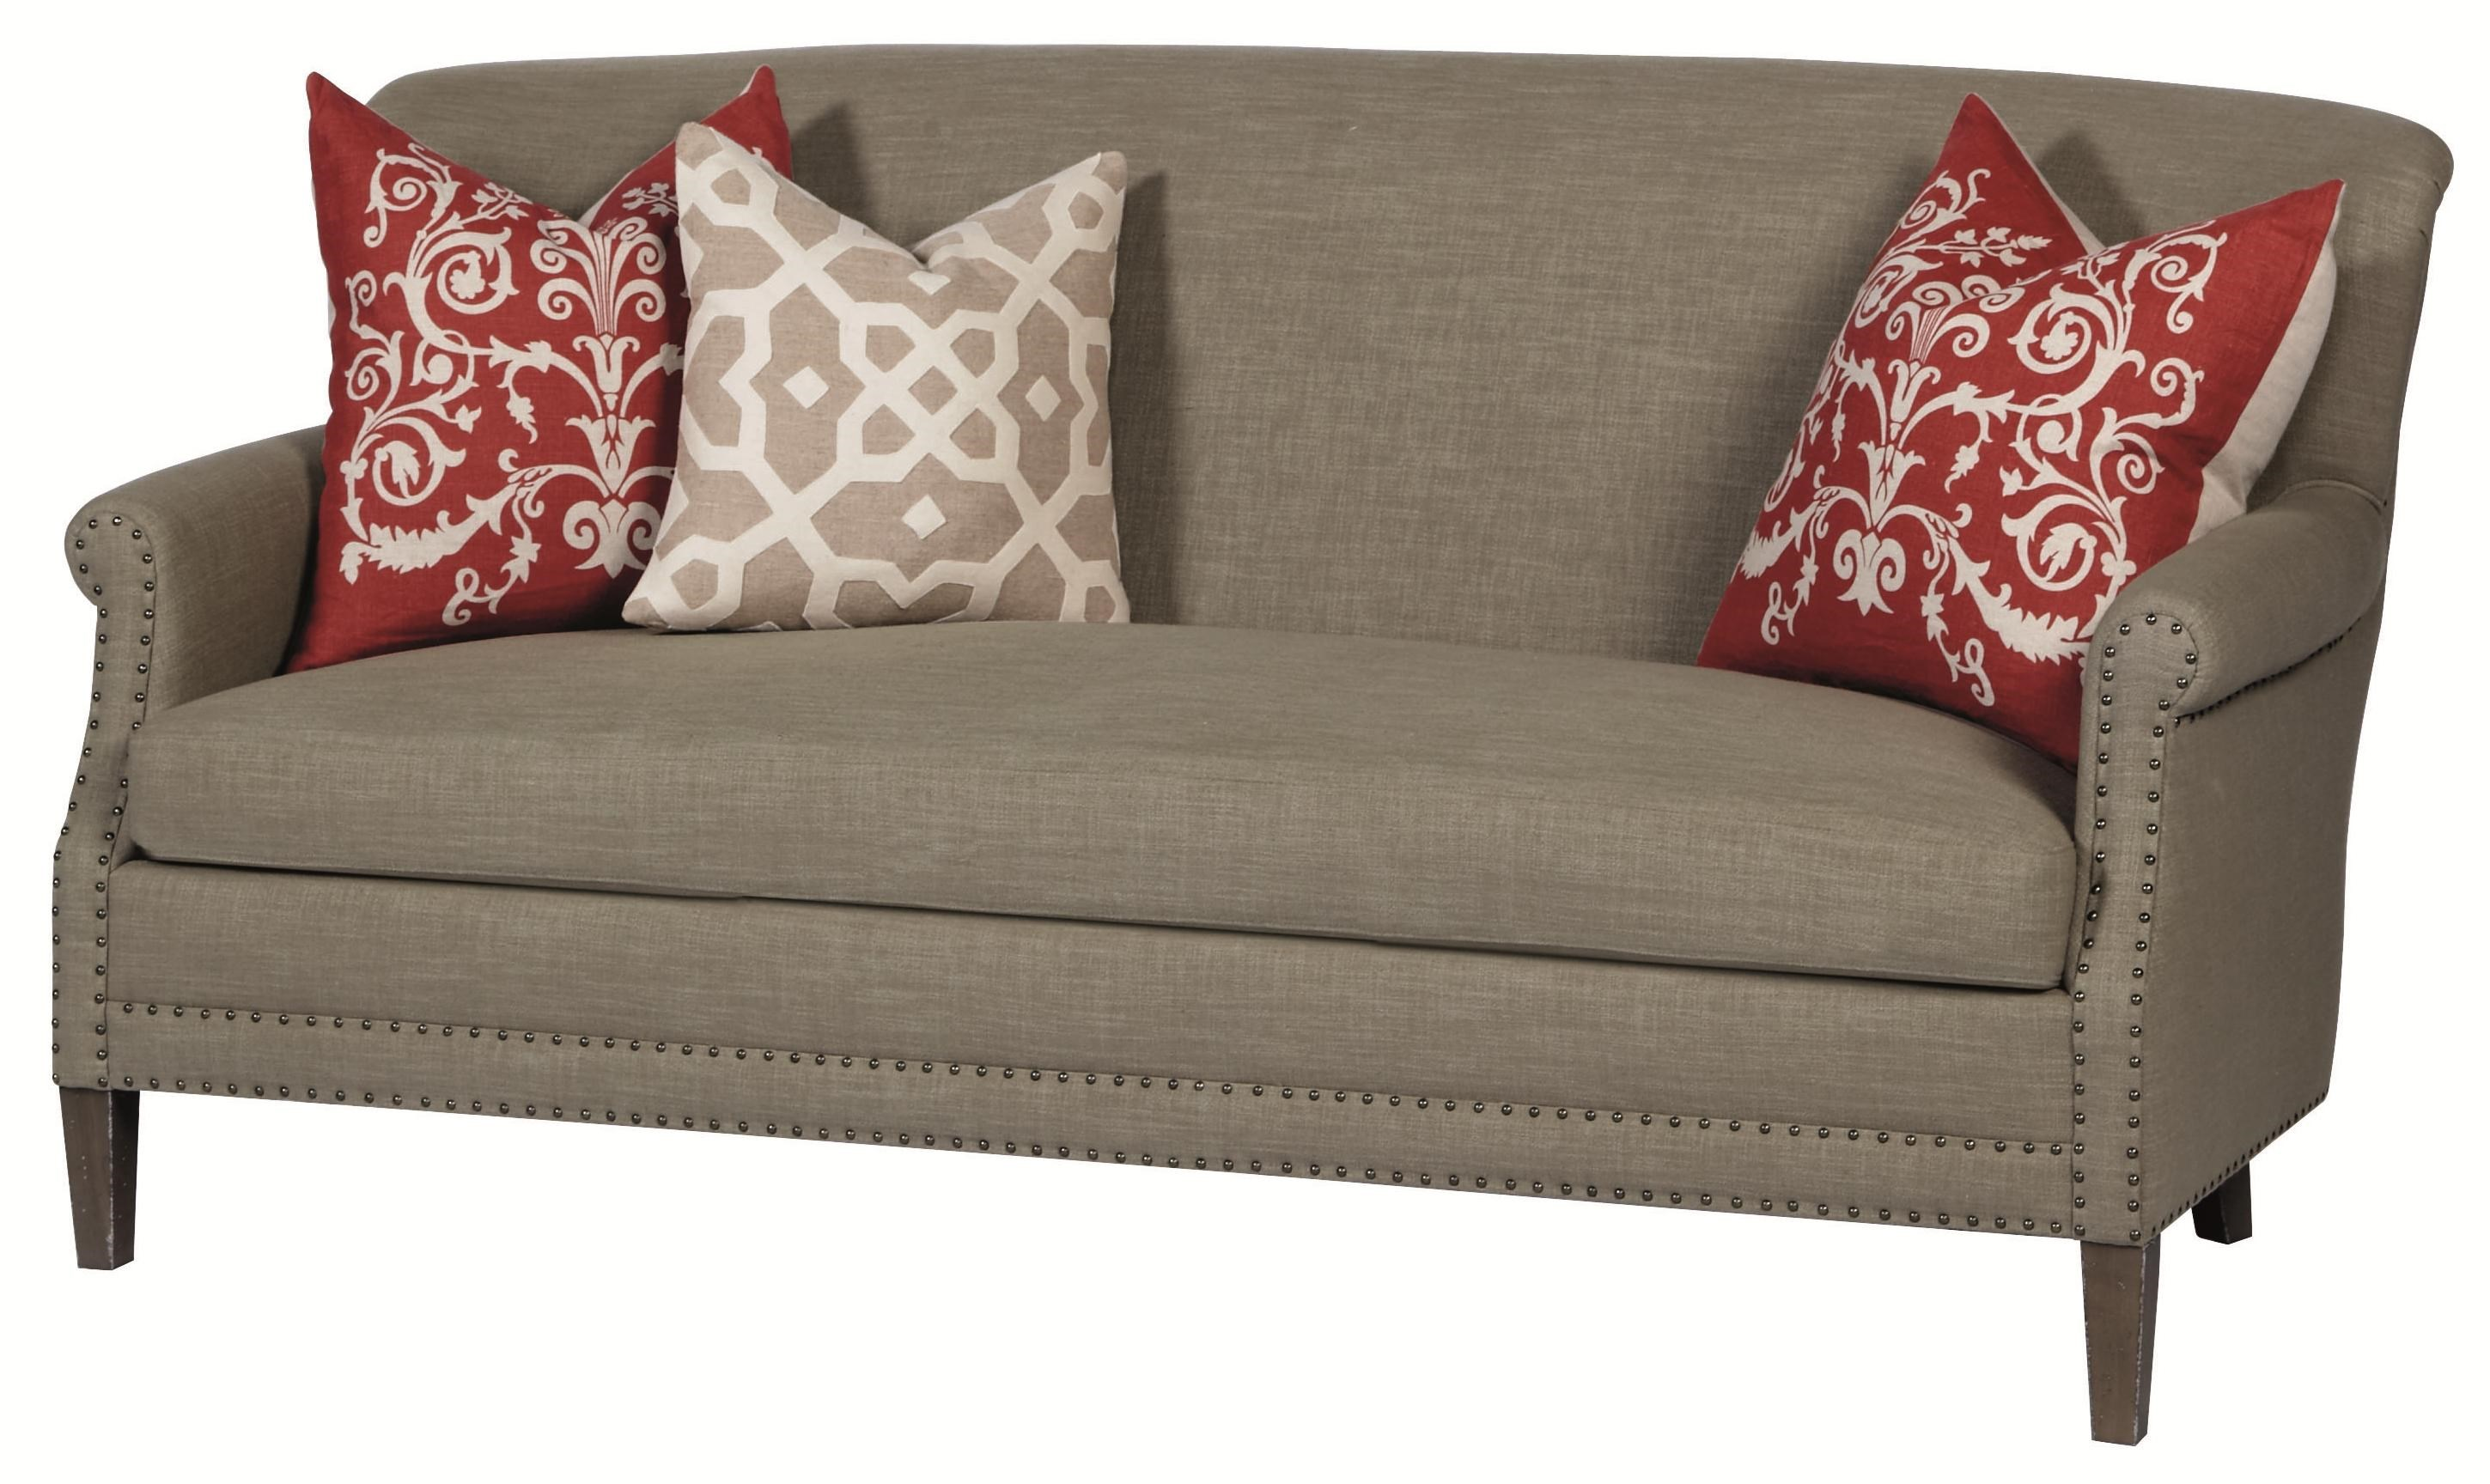 Bernhardt Upholstered Accents Transitional Styled Kitty Settee